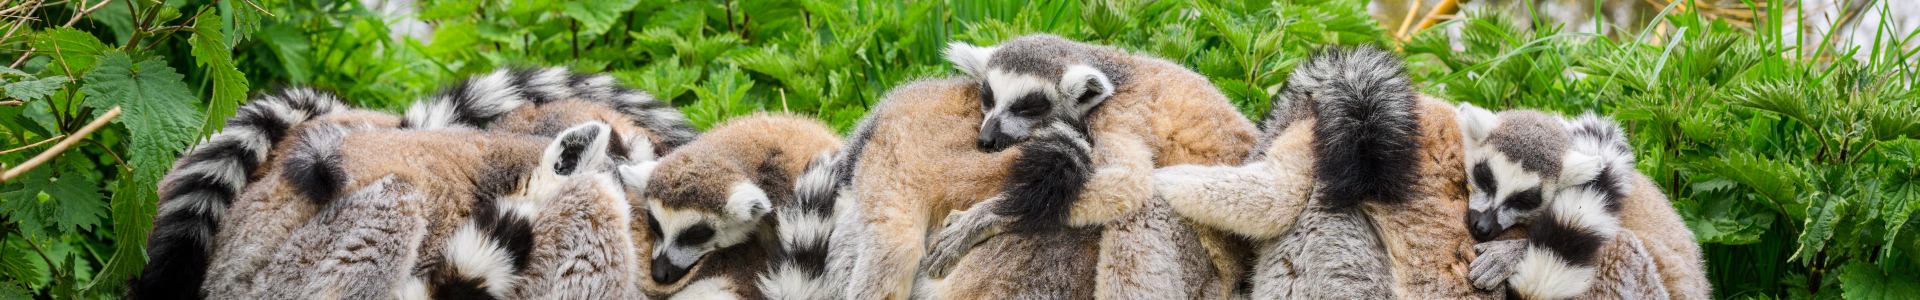 The Camp - Ring-tailed Lemurs